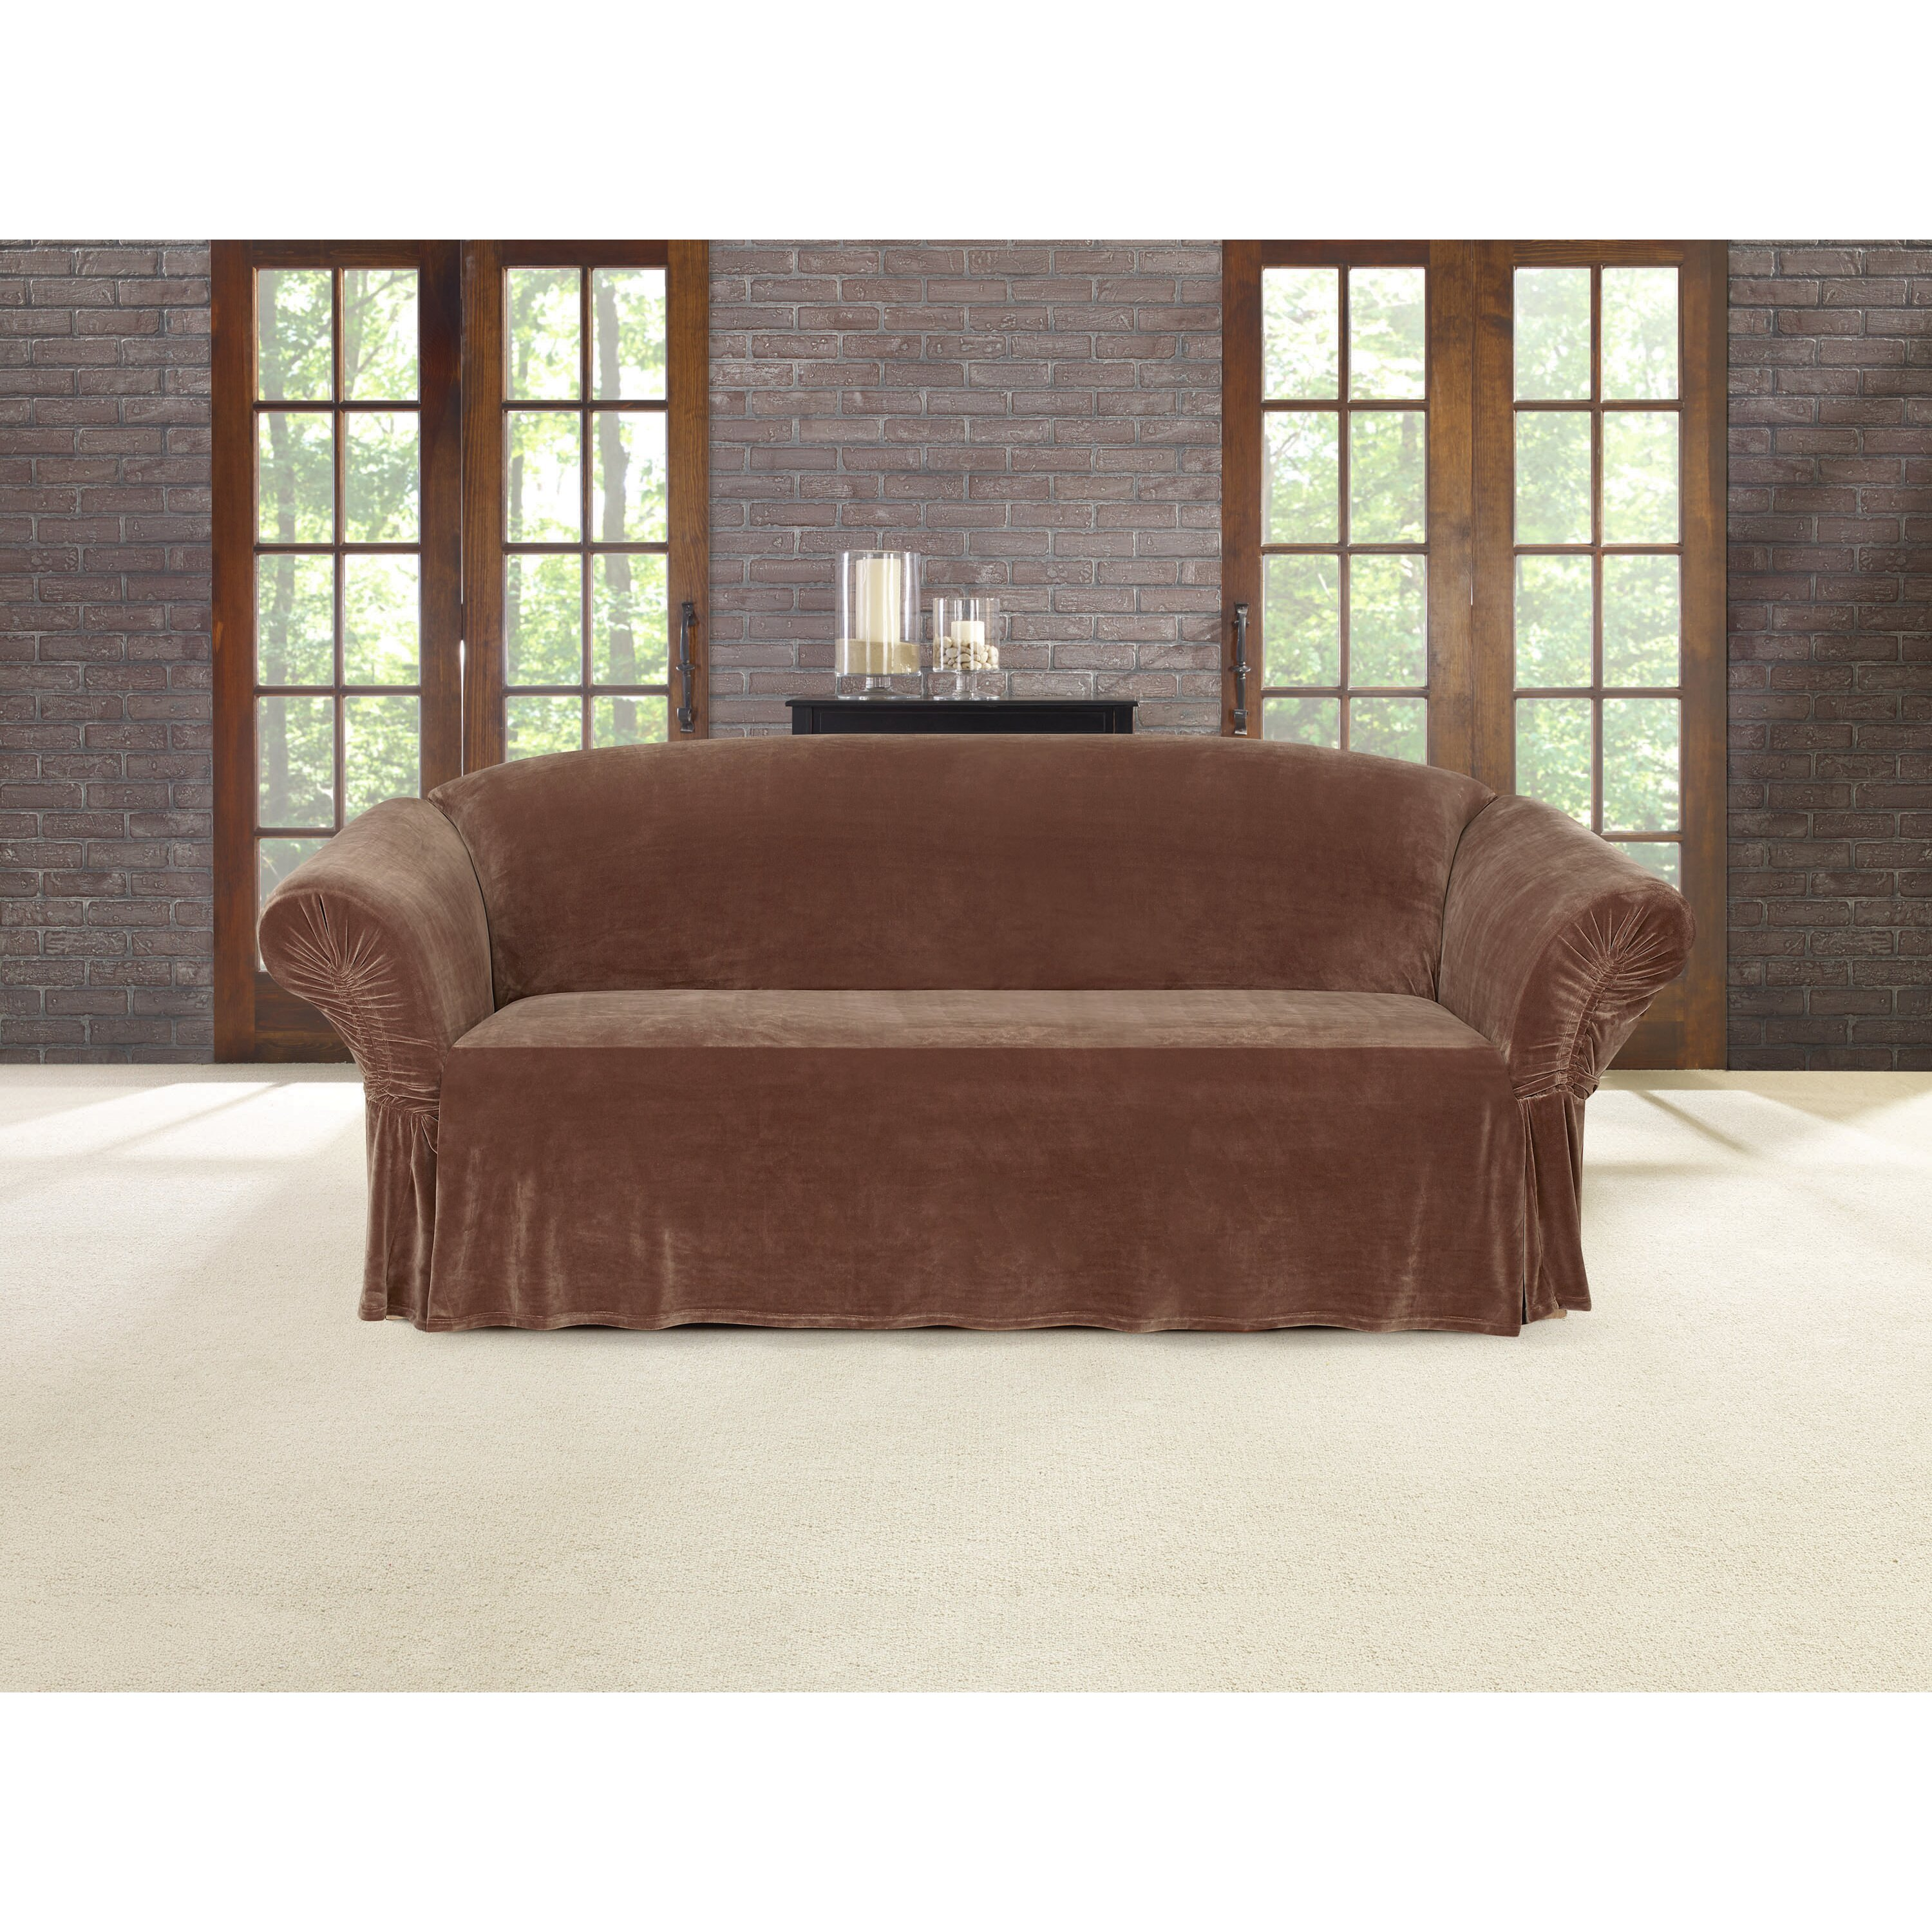 Sure Fit Sofa Skirted Slipcover